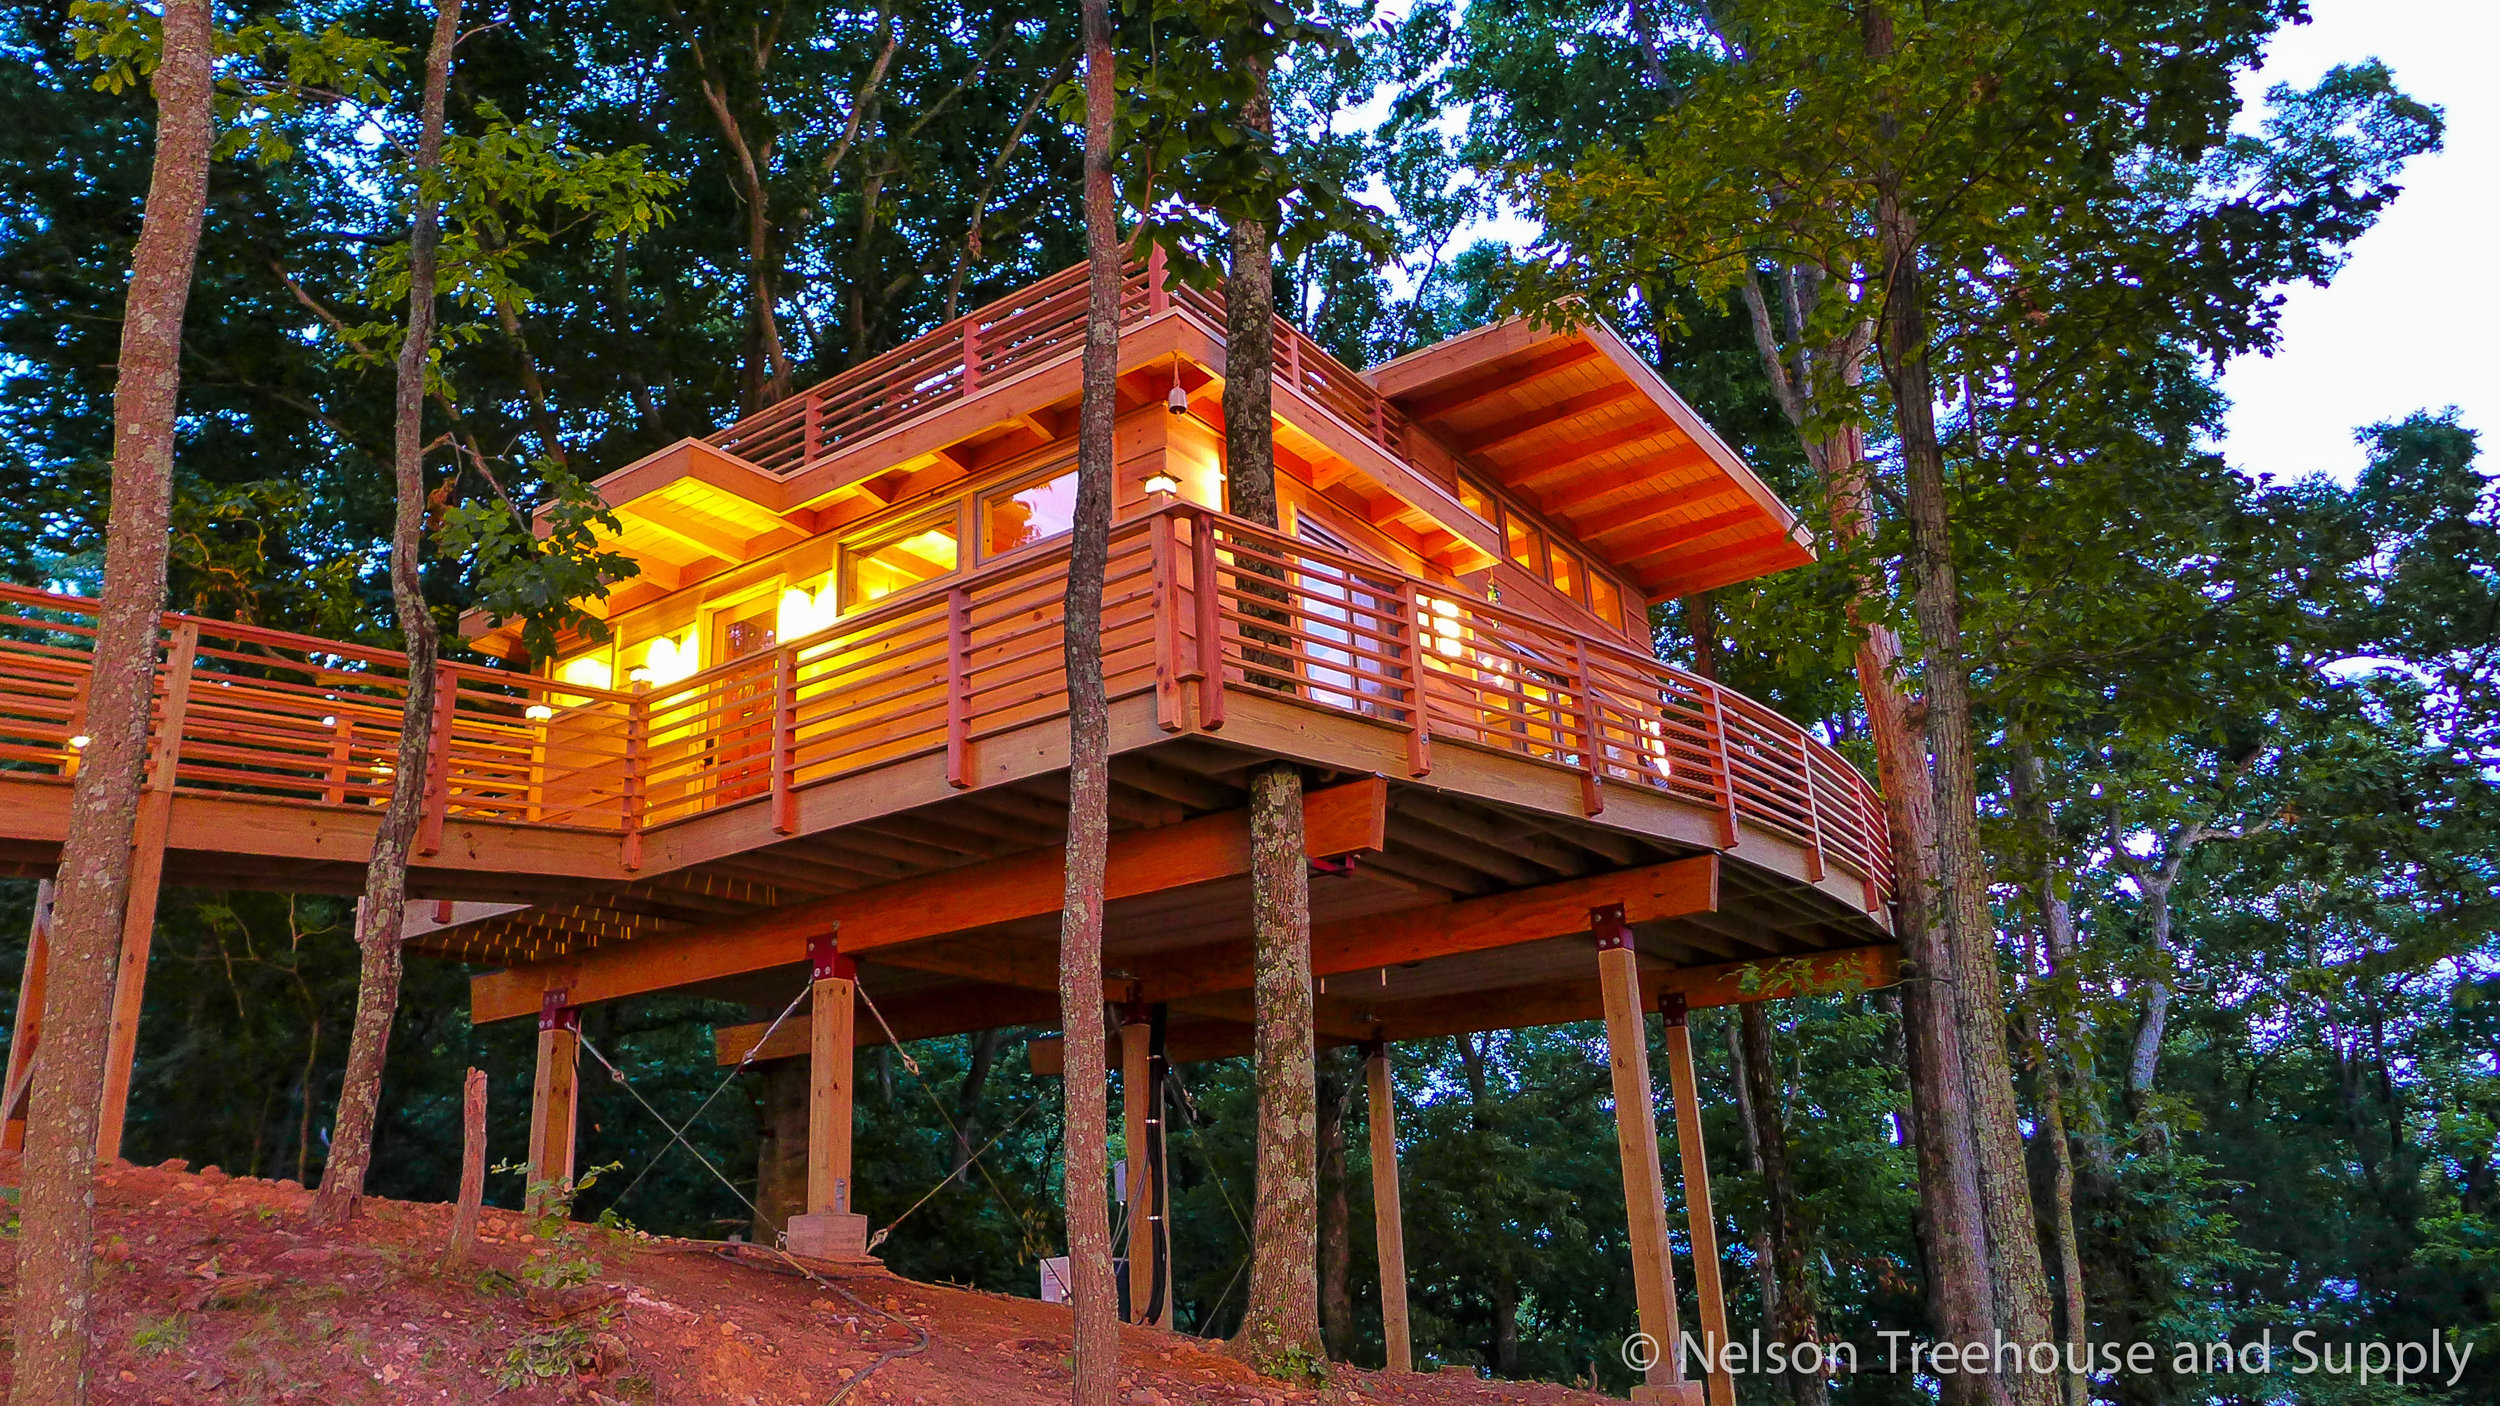 6 steps of the nelson treehouse design process nelson treehouse rh nelsontreehouse com observatory treehouse ky treehouse foods princeton ky jobs